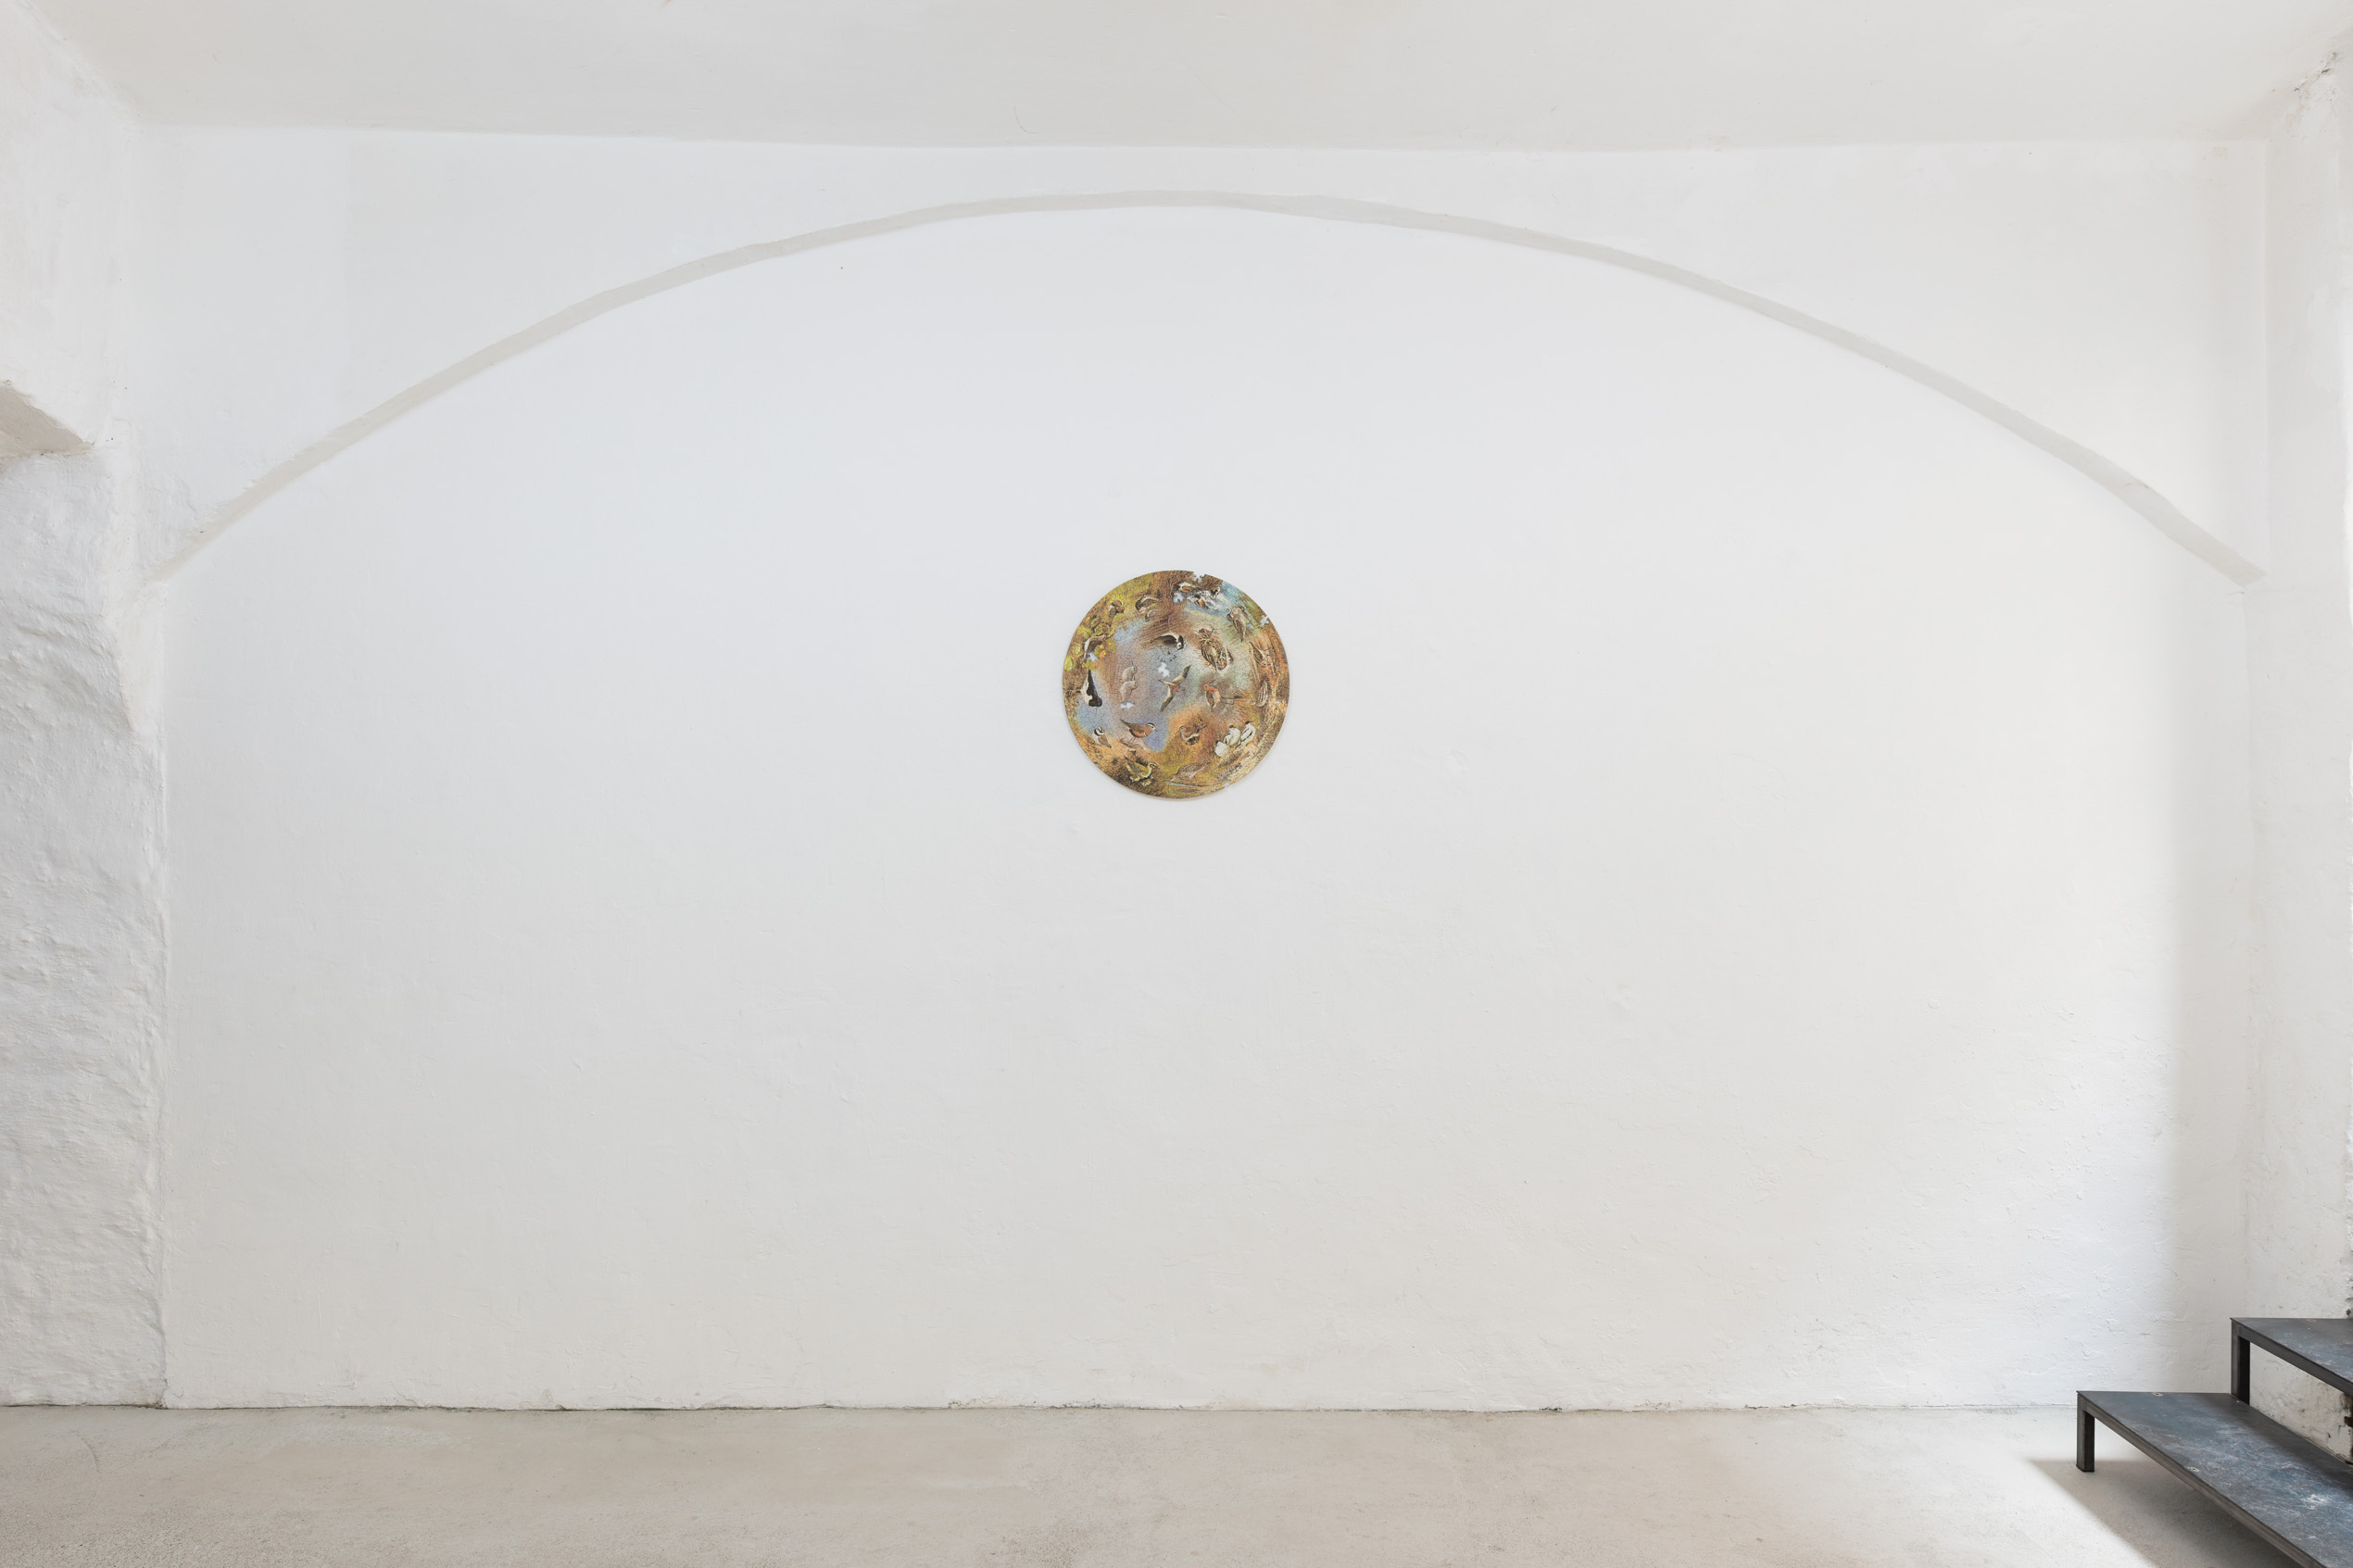 Emily Jones: All god's children could be led astray - installation view by Maximilian Anelli-Monti